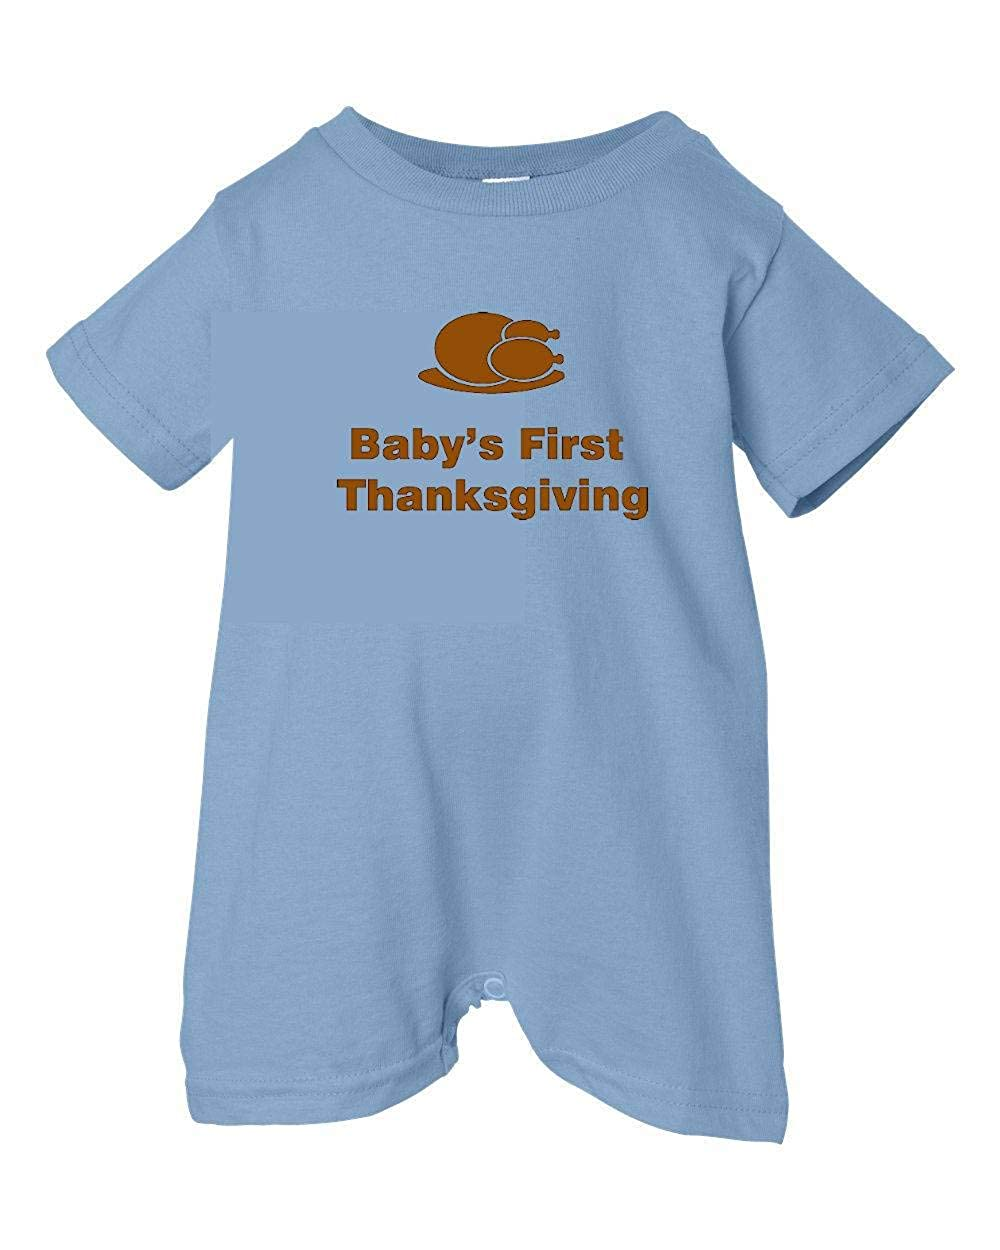 Dinner Festive Threads Unisex Baby Babys First Thanksgiving T-Shirt Romper Lt. Blue, 6 Months